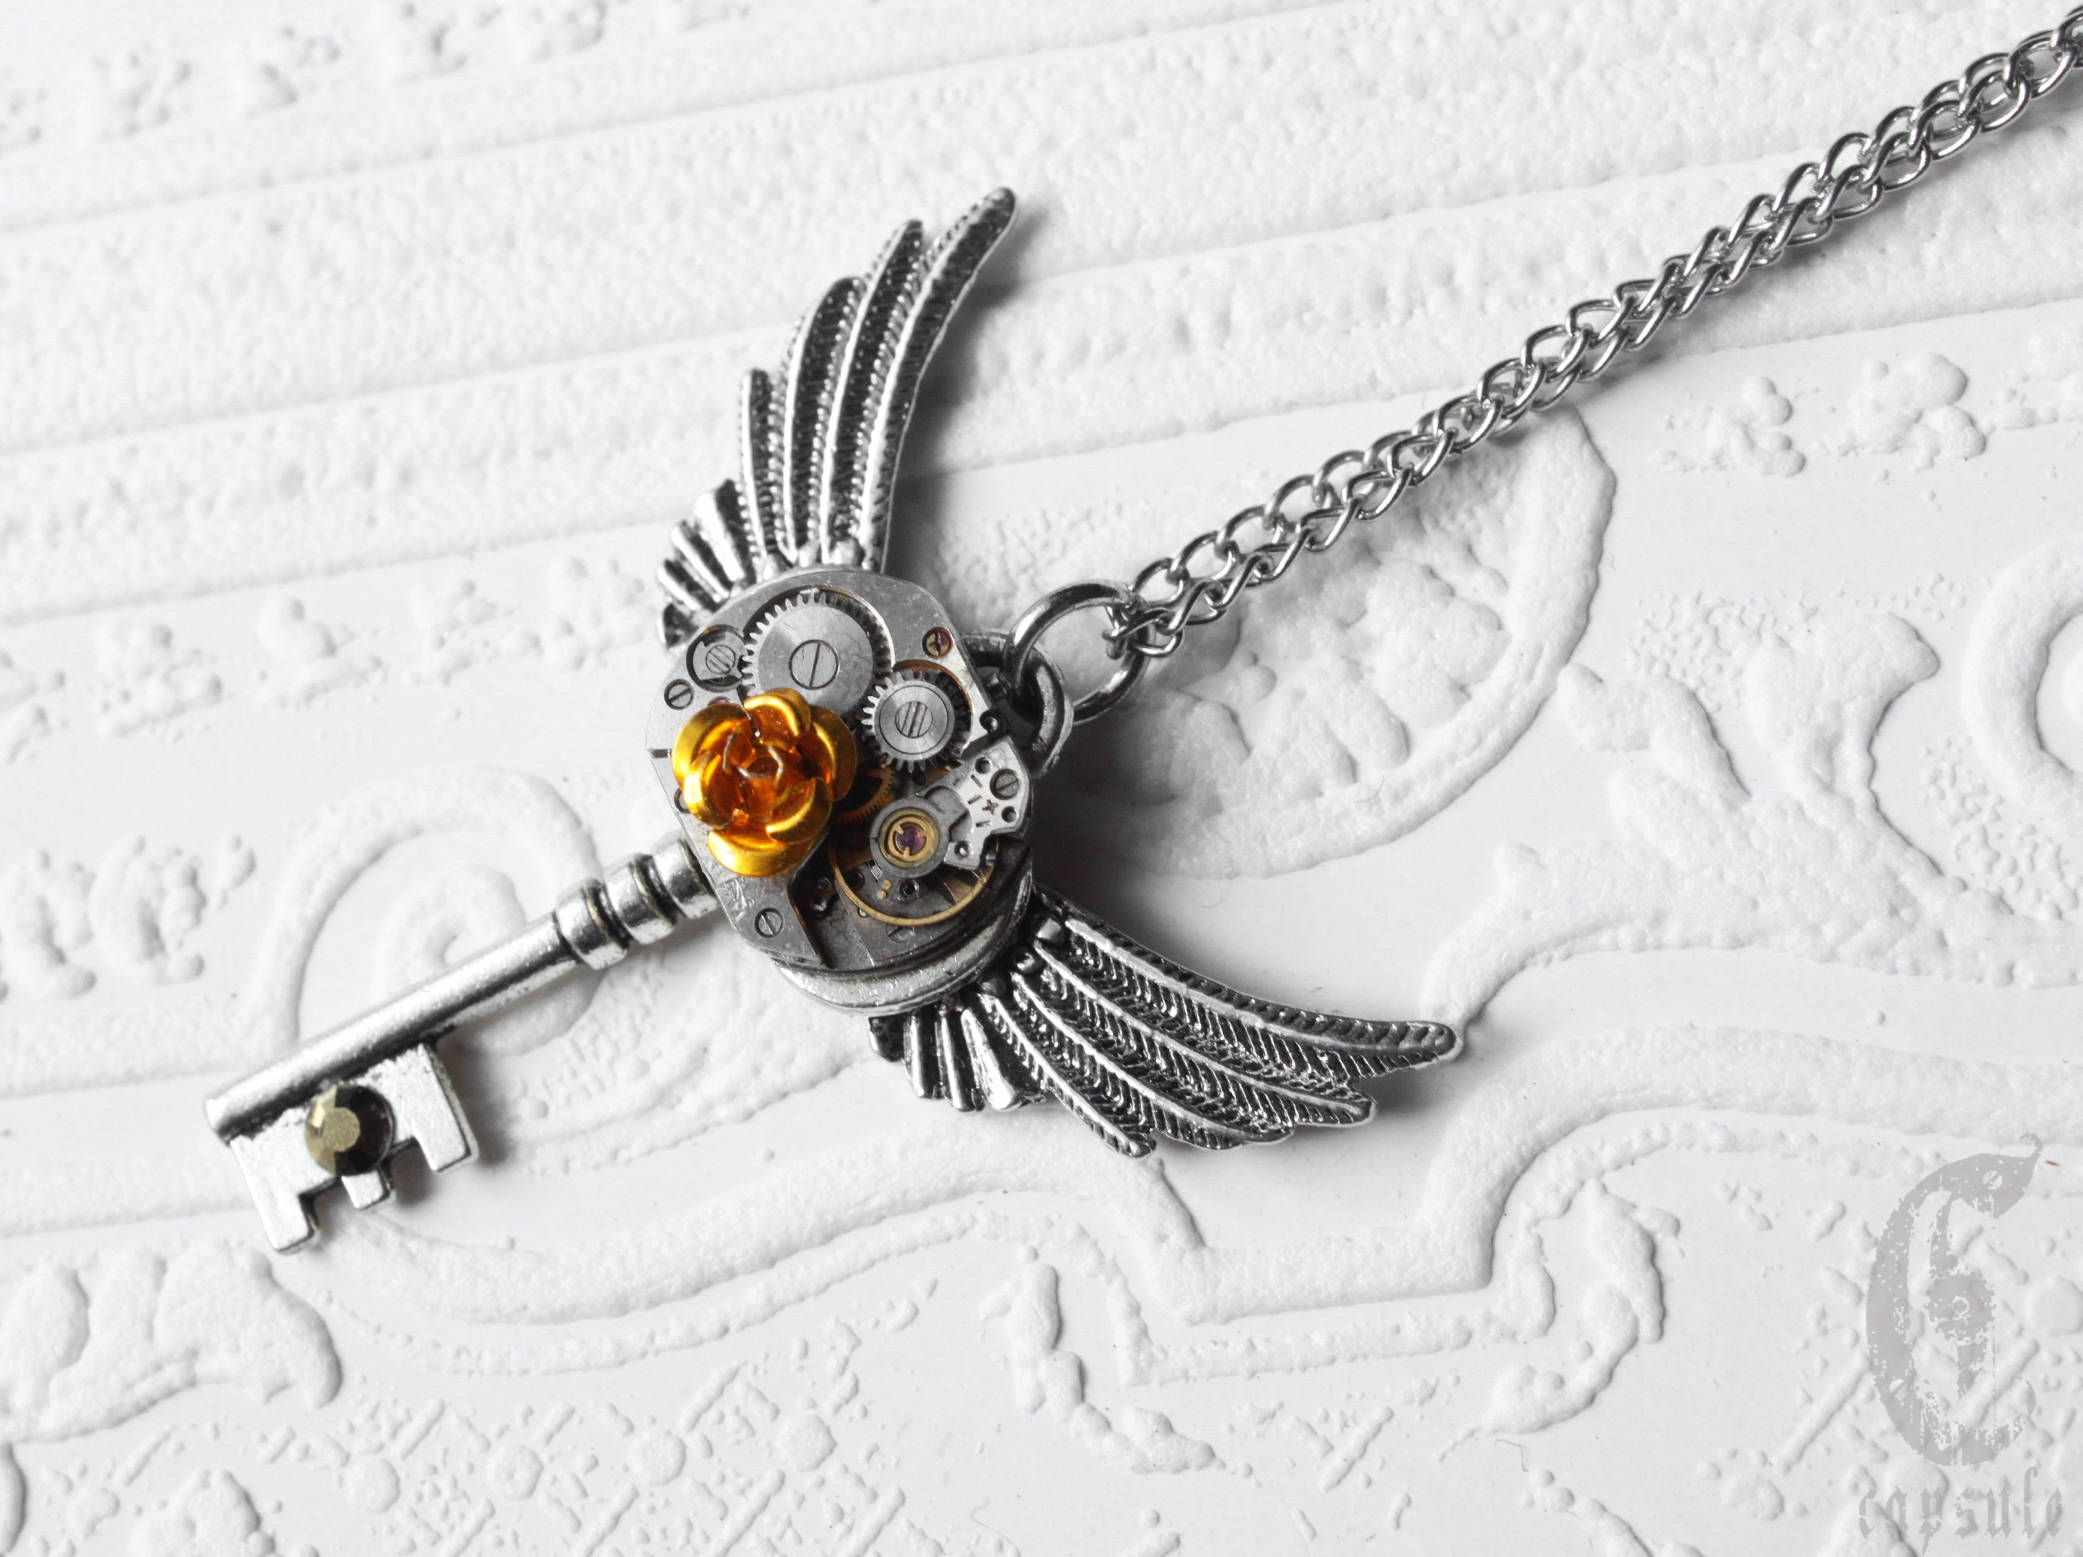 Antique silver steampunk skeleton key pendant necklace with wings